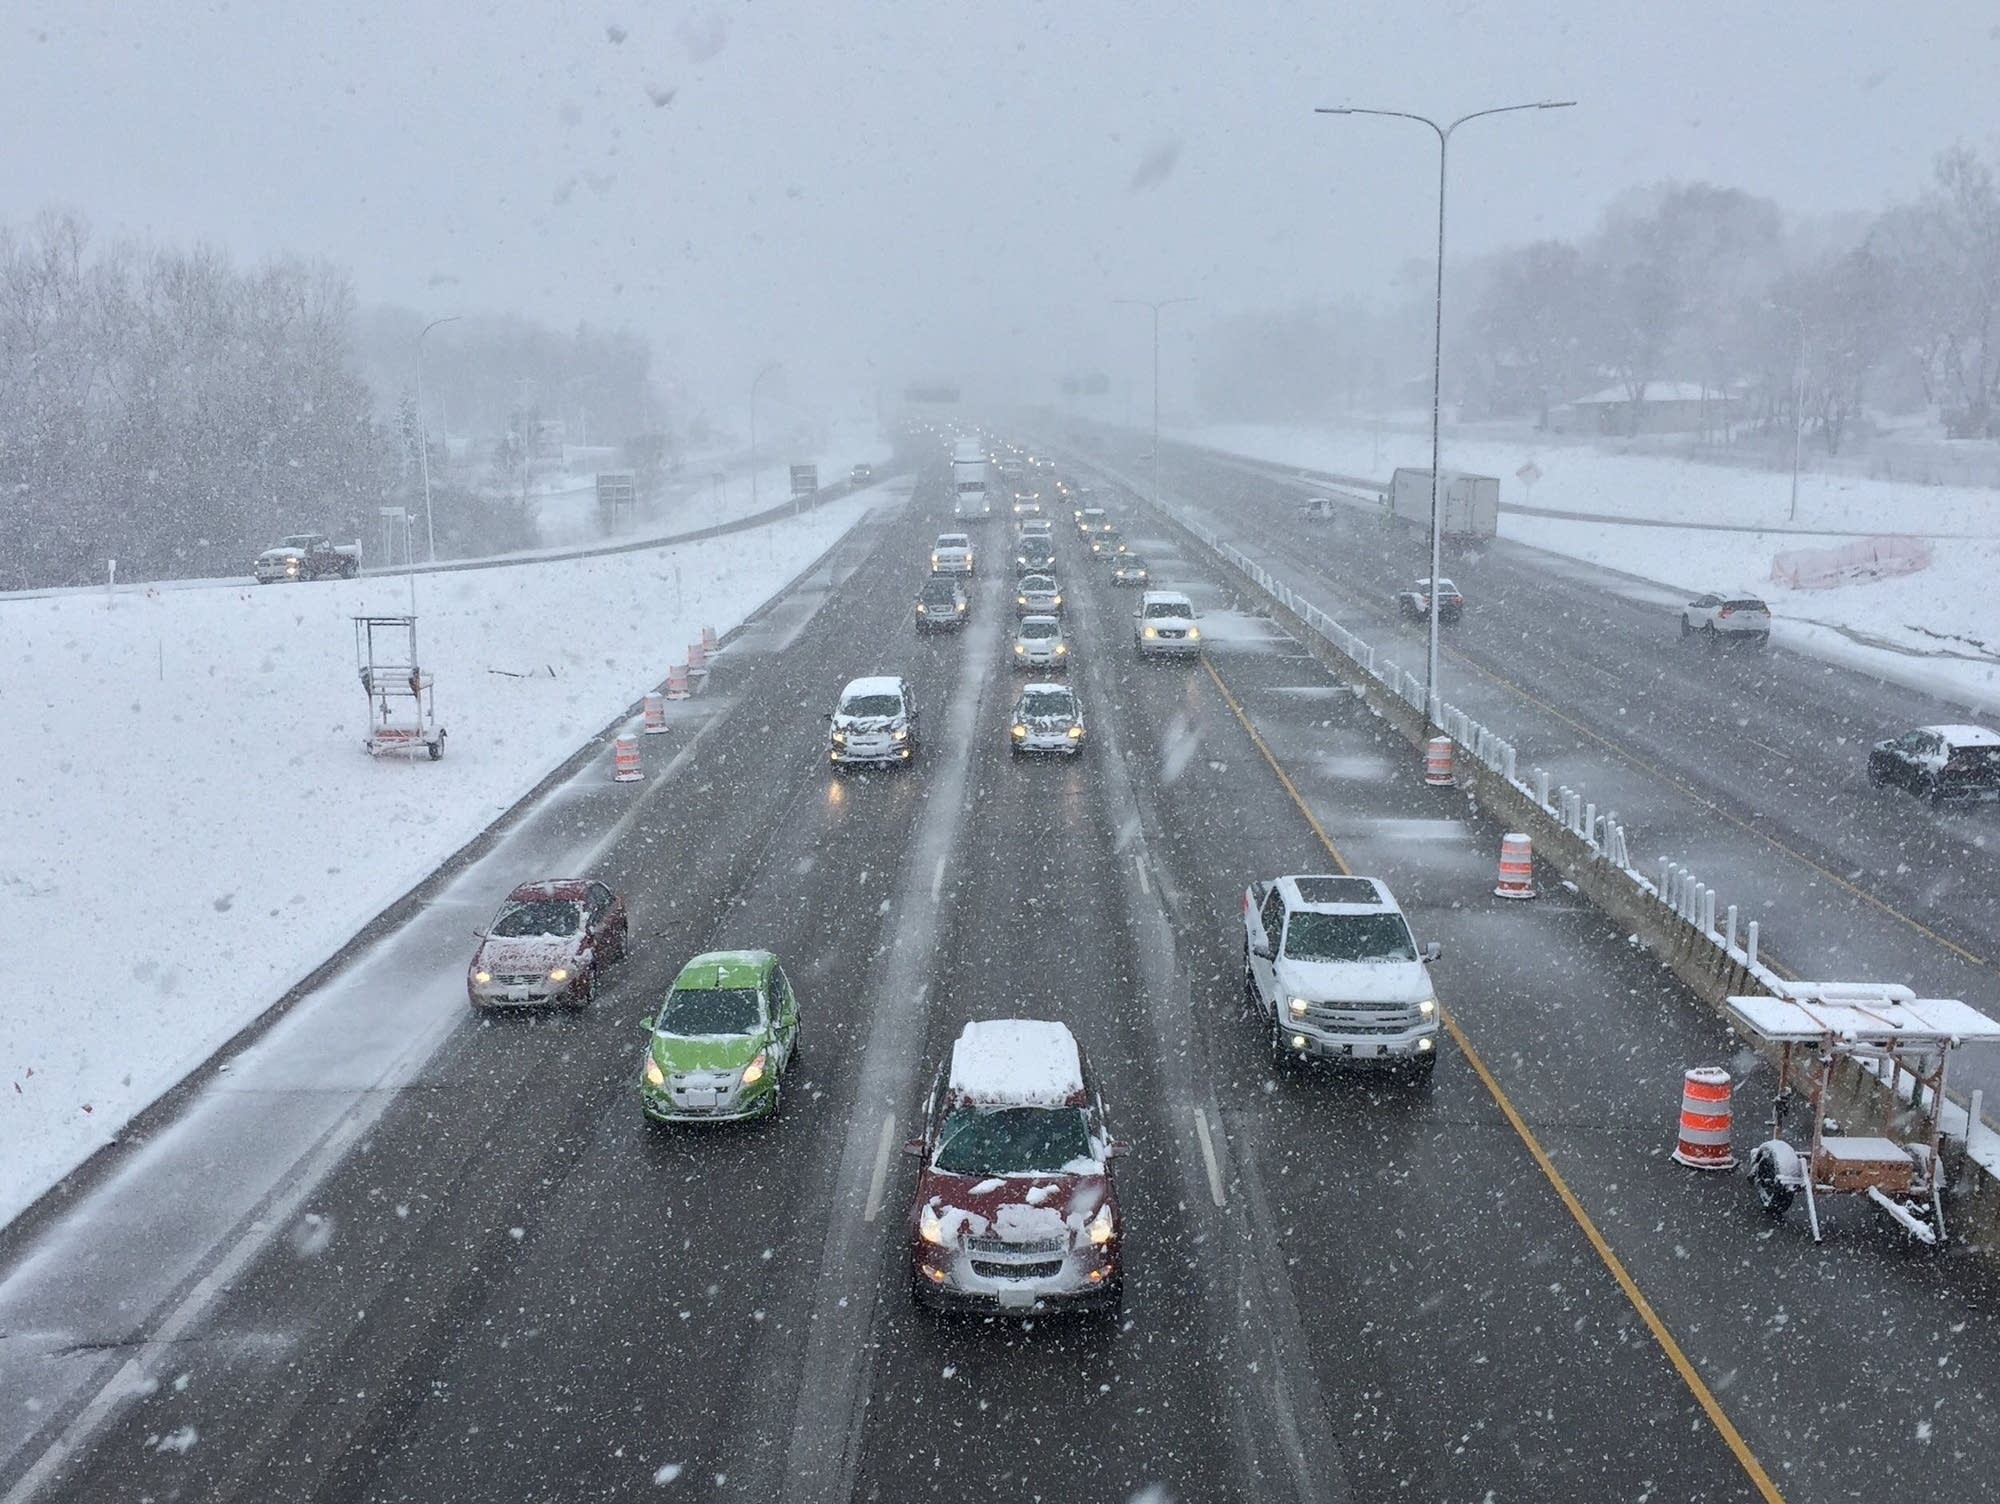 Traffic on Interstate 494 moves slowly amid steady snow in South St. Paul.